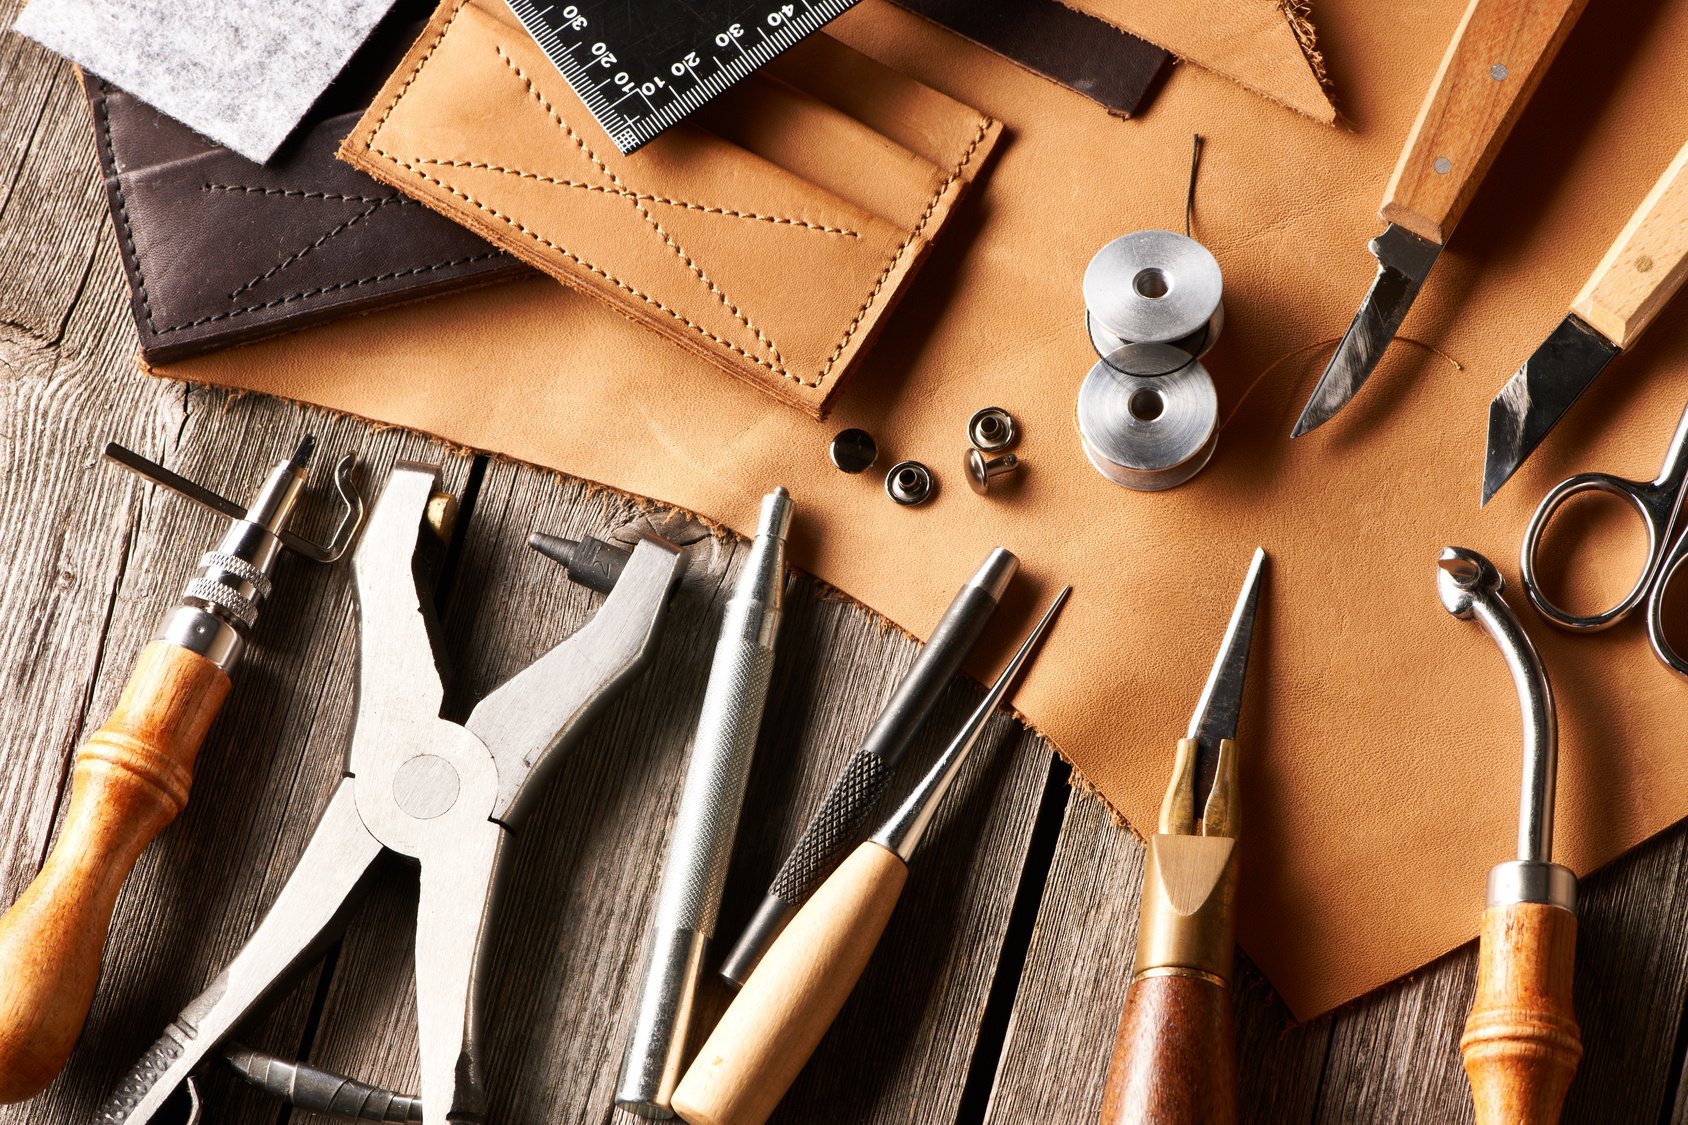 Leatherworkers use many tools for their trade... Moisture meters are an important part of their tool set.